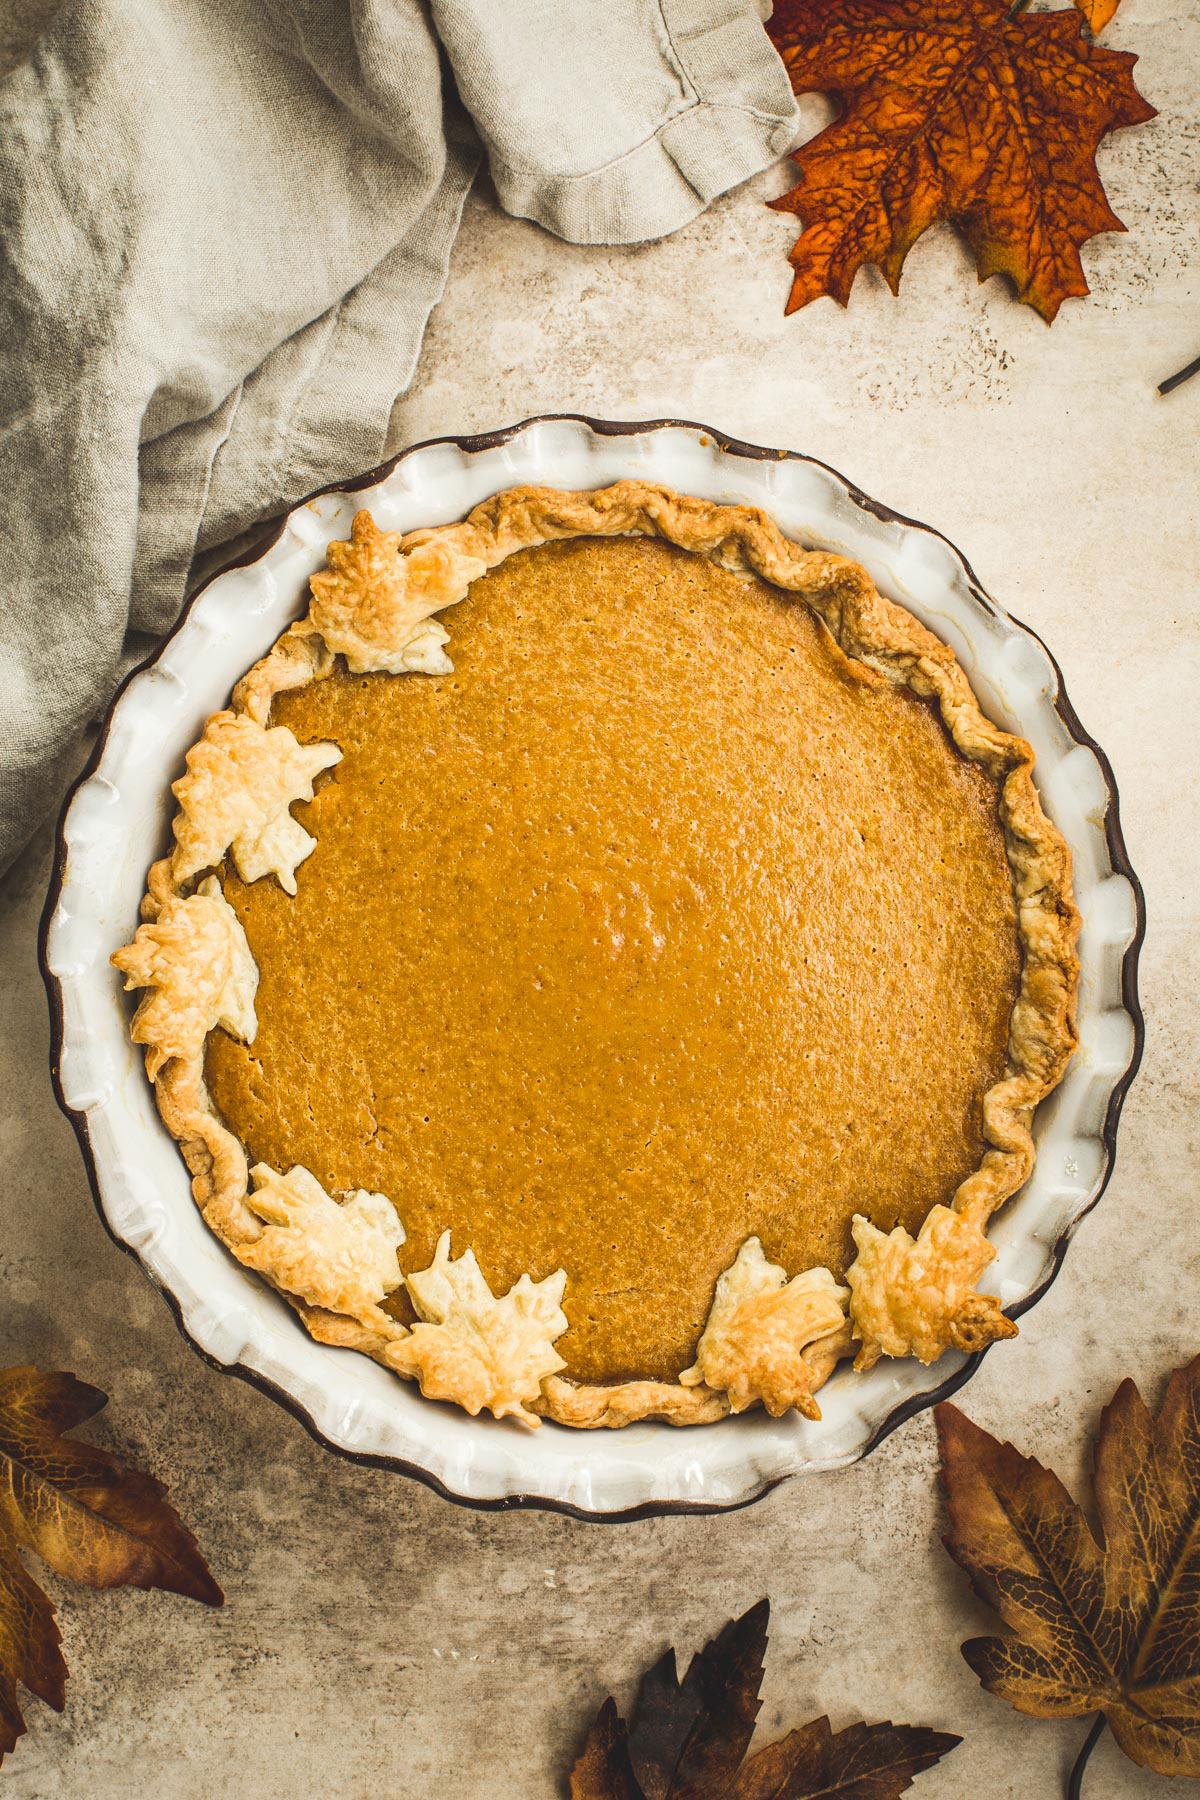 Maple pumpkin pie with a leaf covered crust.